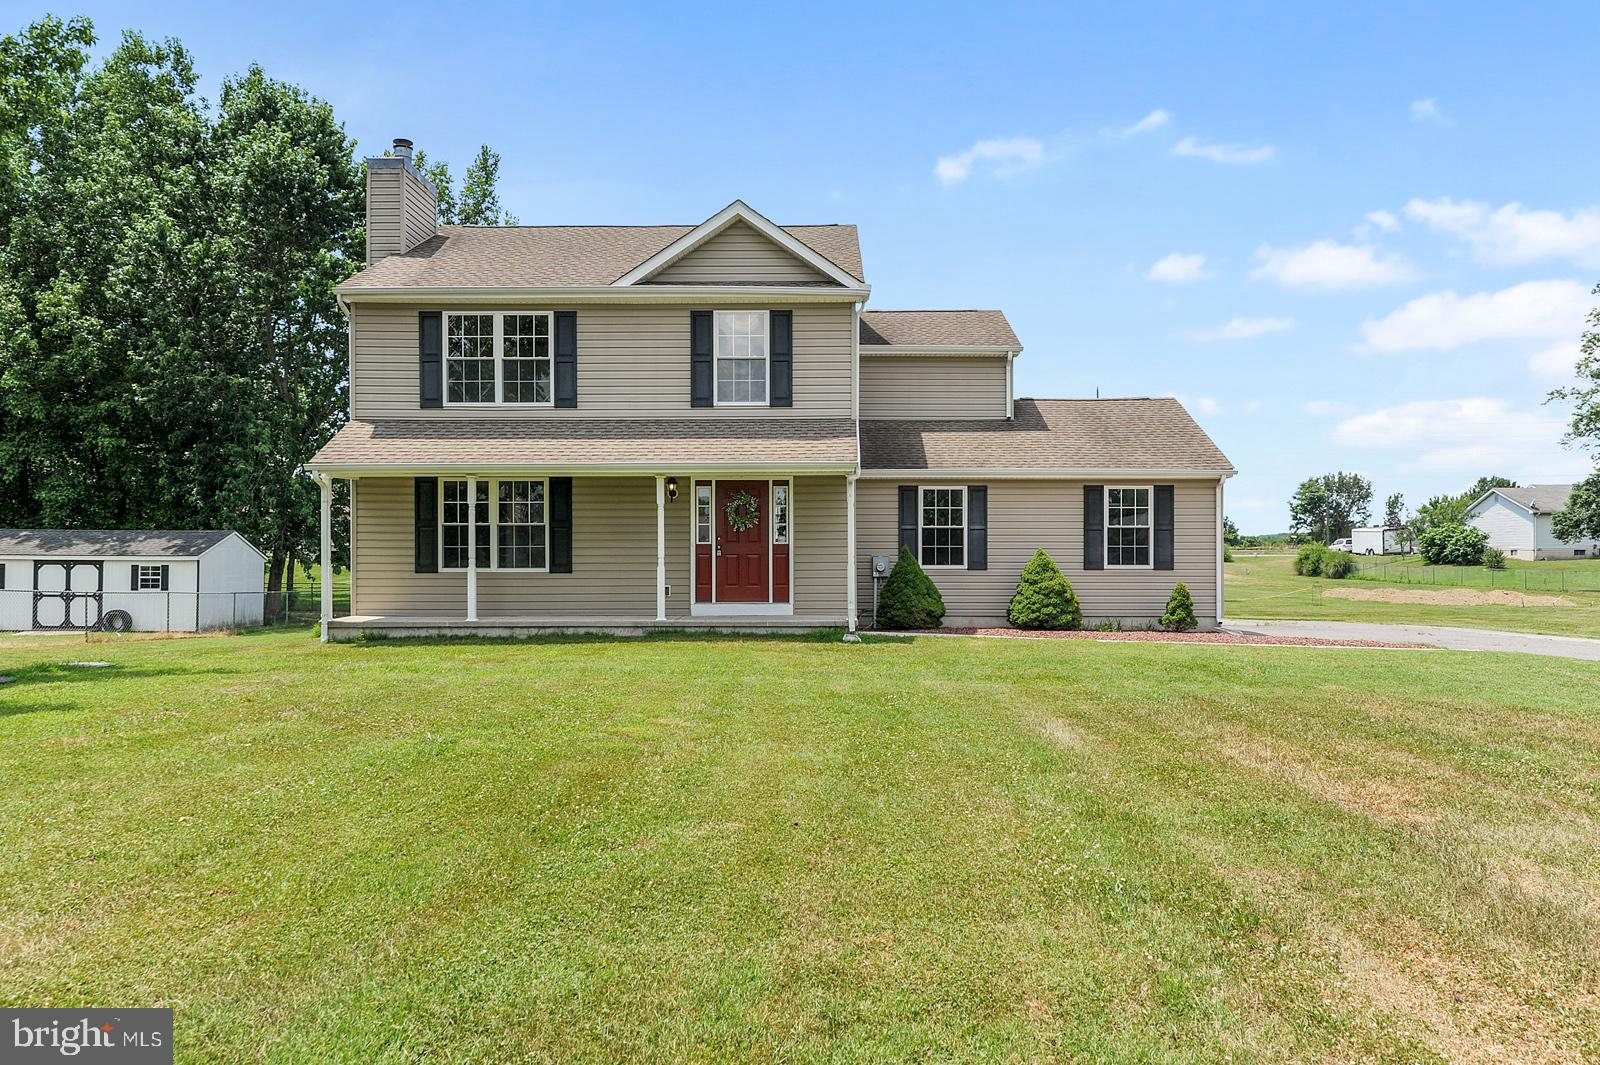 This recently refreshed home is looking great and ready for it's new owner. Quietly sitting on over 3/4 acre lot in Mount Vernon Estate community this home has new carpet, new paint, light fixtures, and more. Seeing is believing so schedule your showing today and  see for yourself before it's gone.